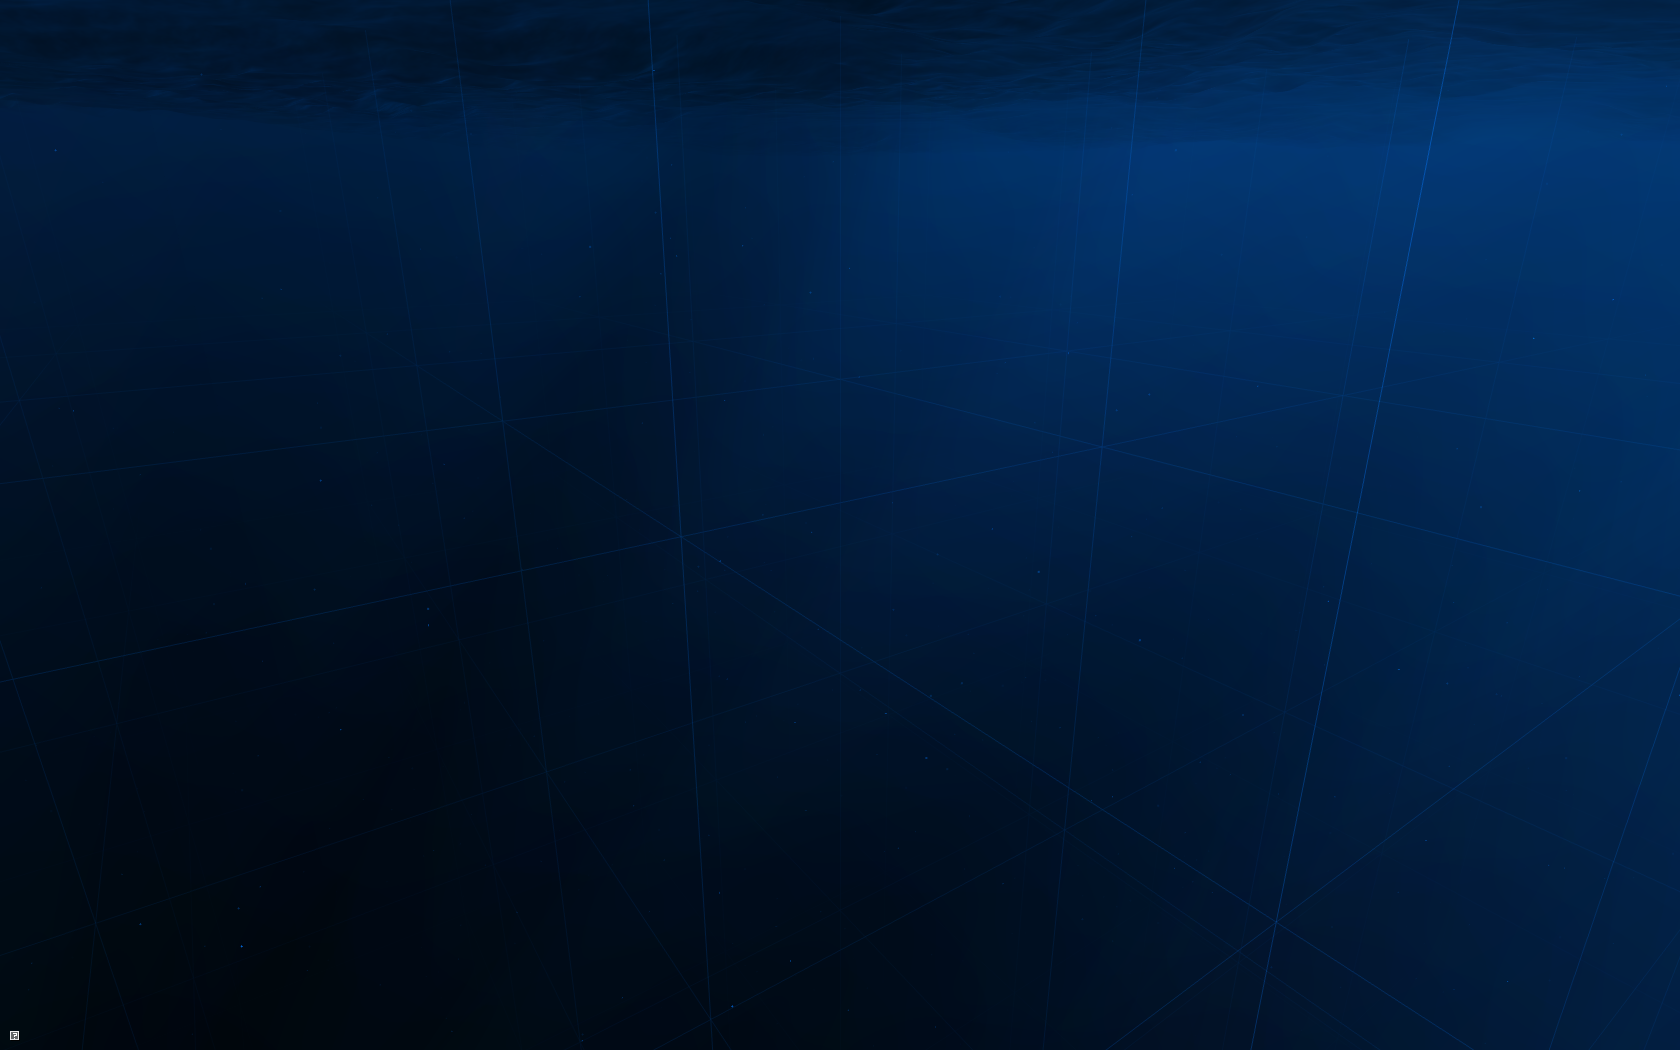 dark-ocean-rejected_9103860563_o